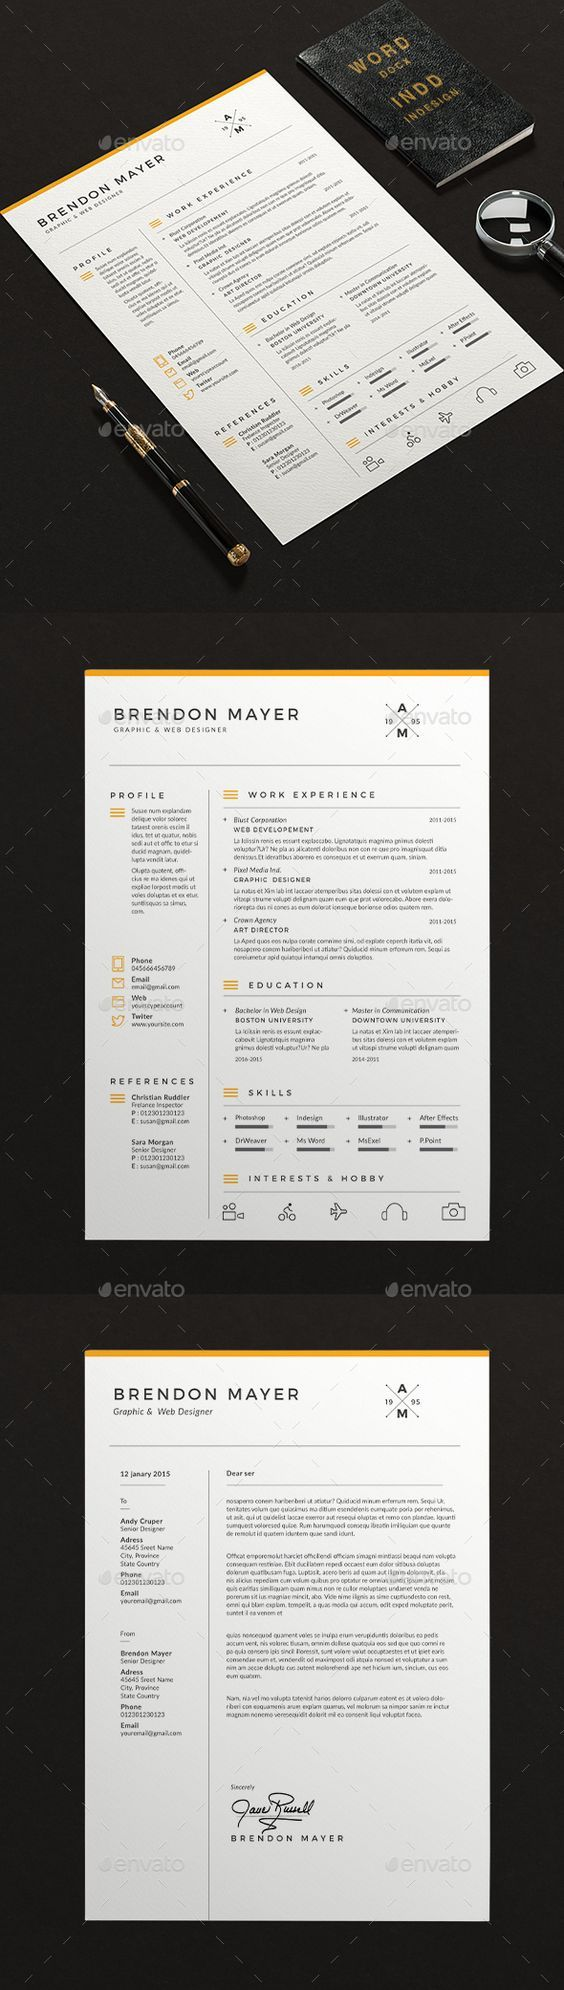 49 best Resume Roundup images on Pinterest | Resume templates, Cv ...